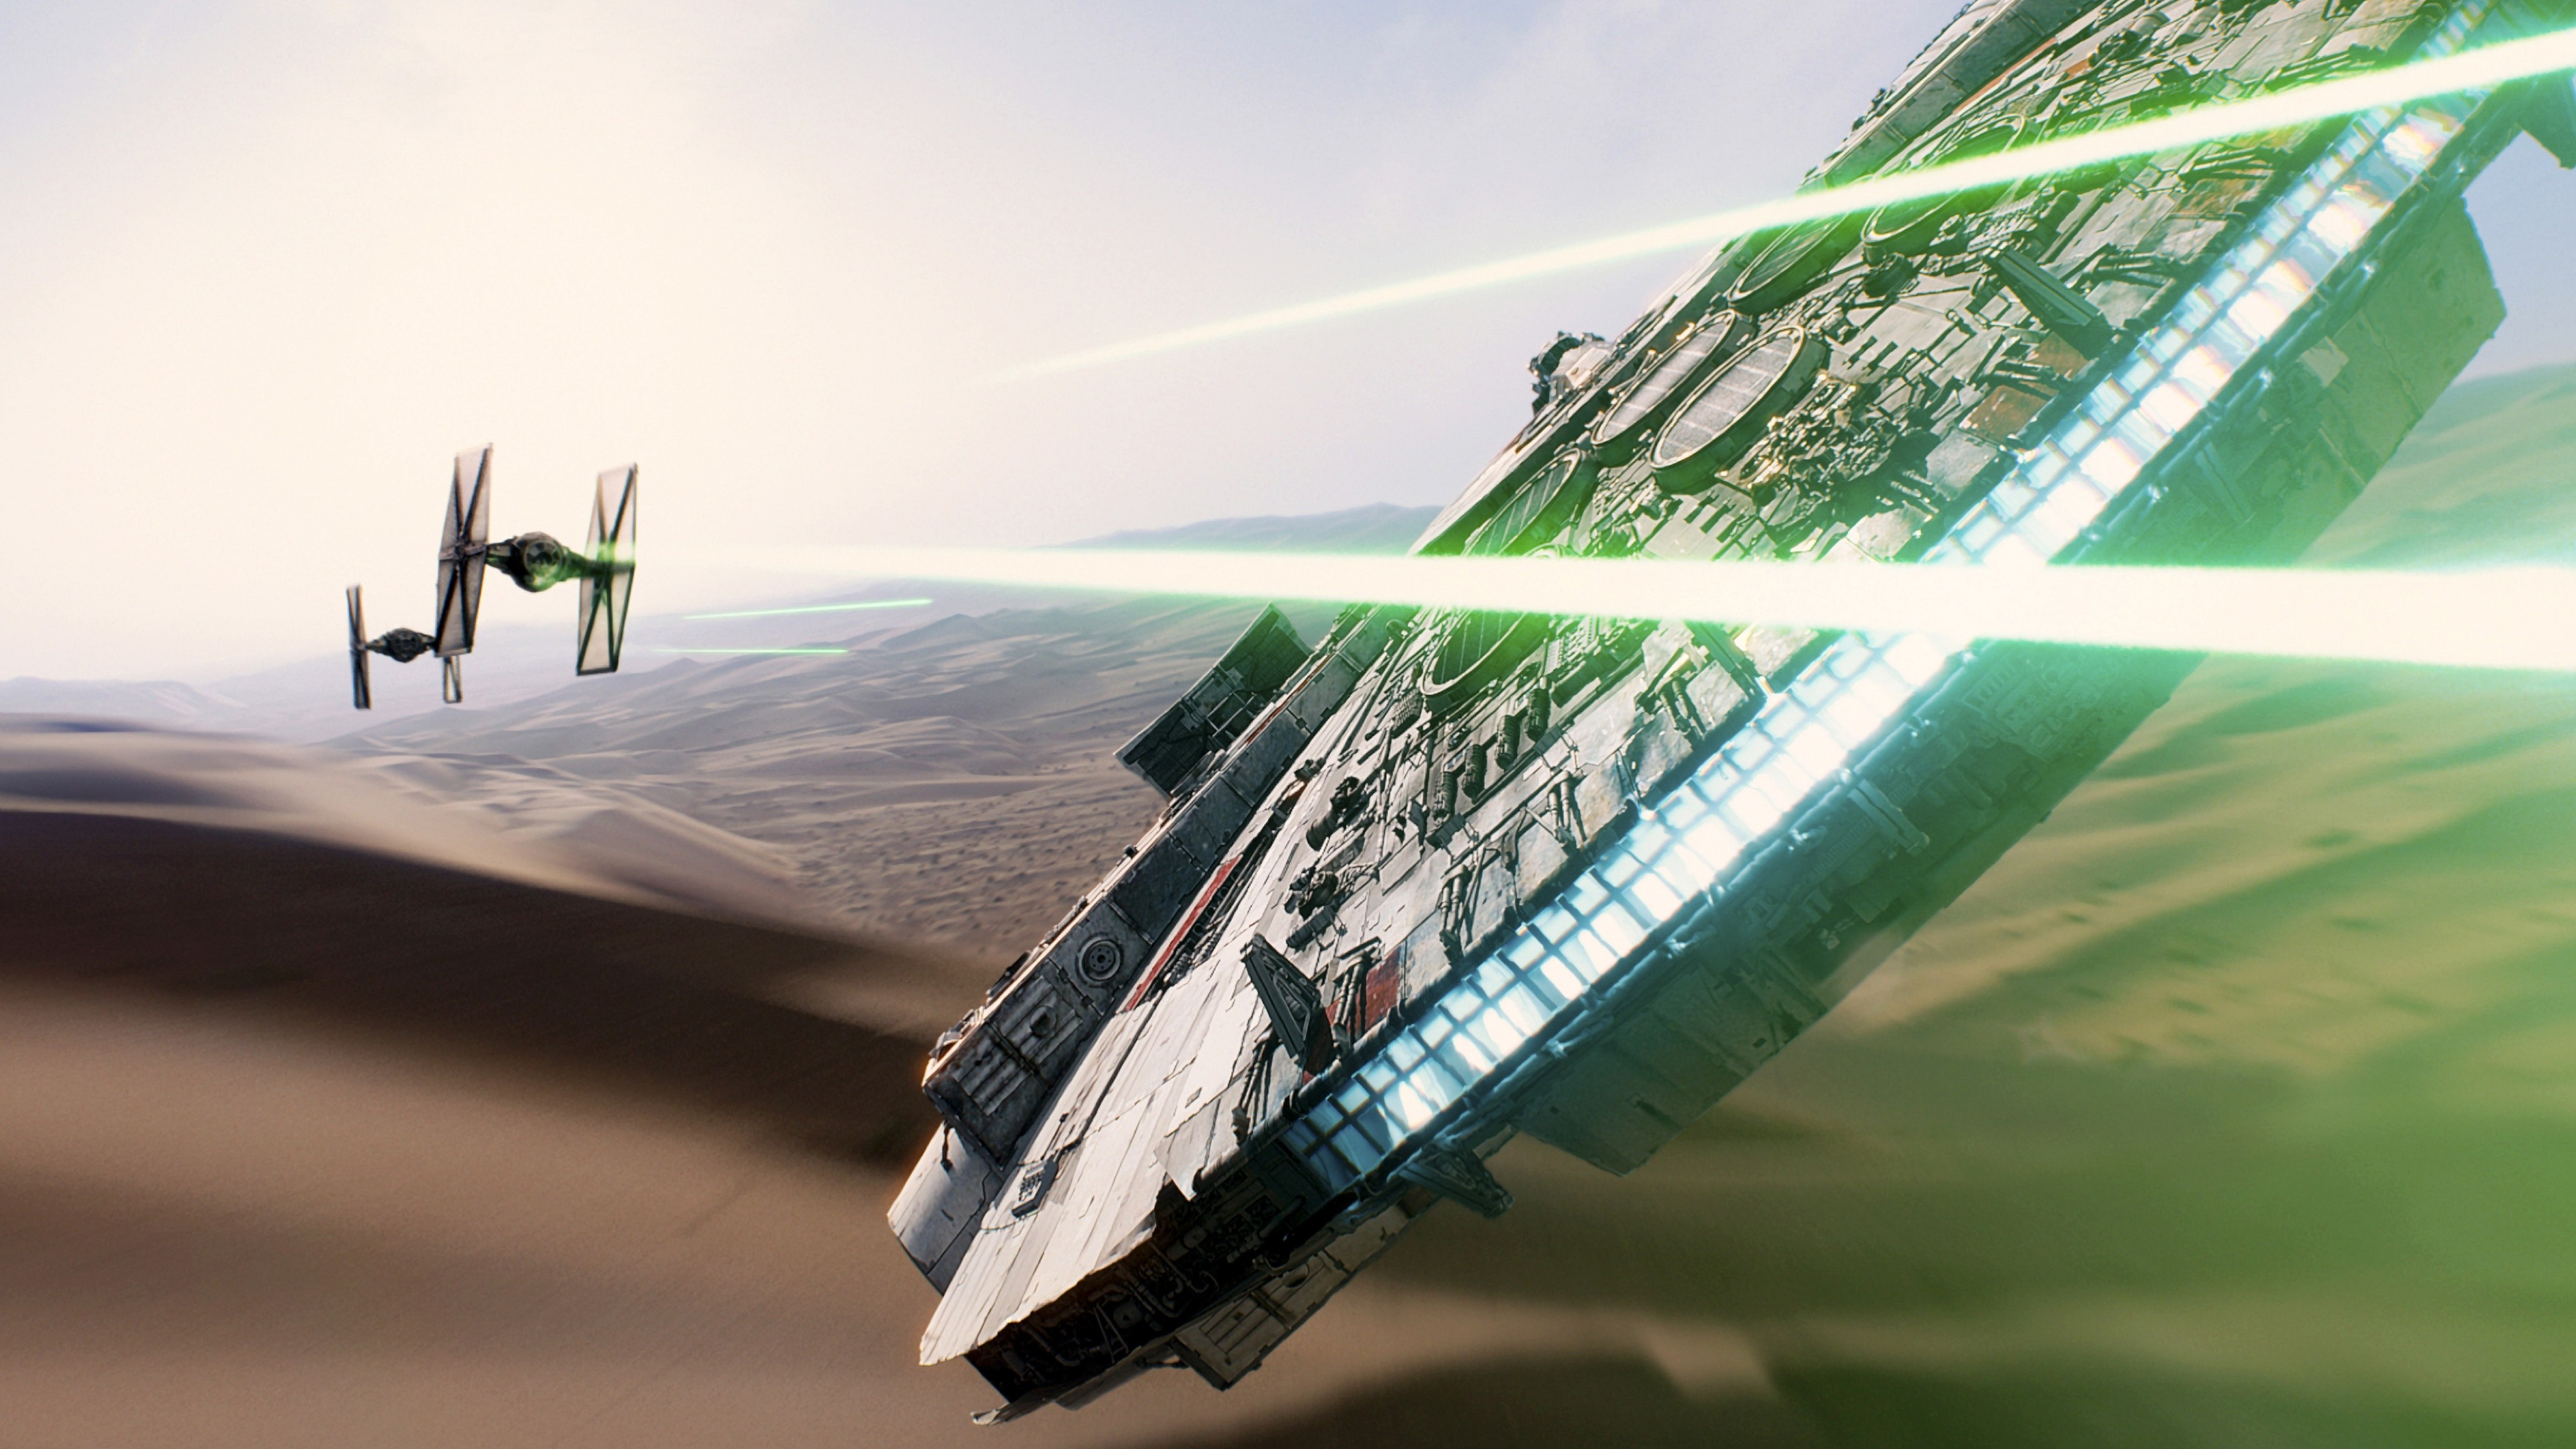 Star Wars 4k Wallpaper Download Free Awesome Wallpapers